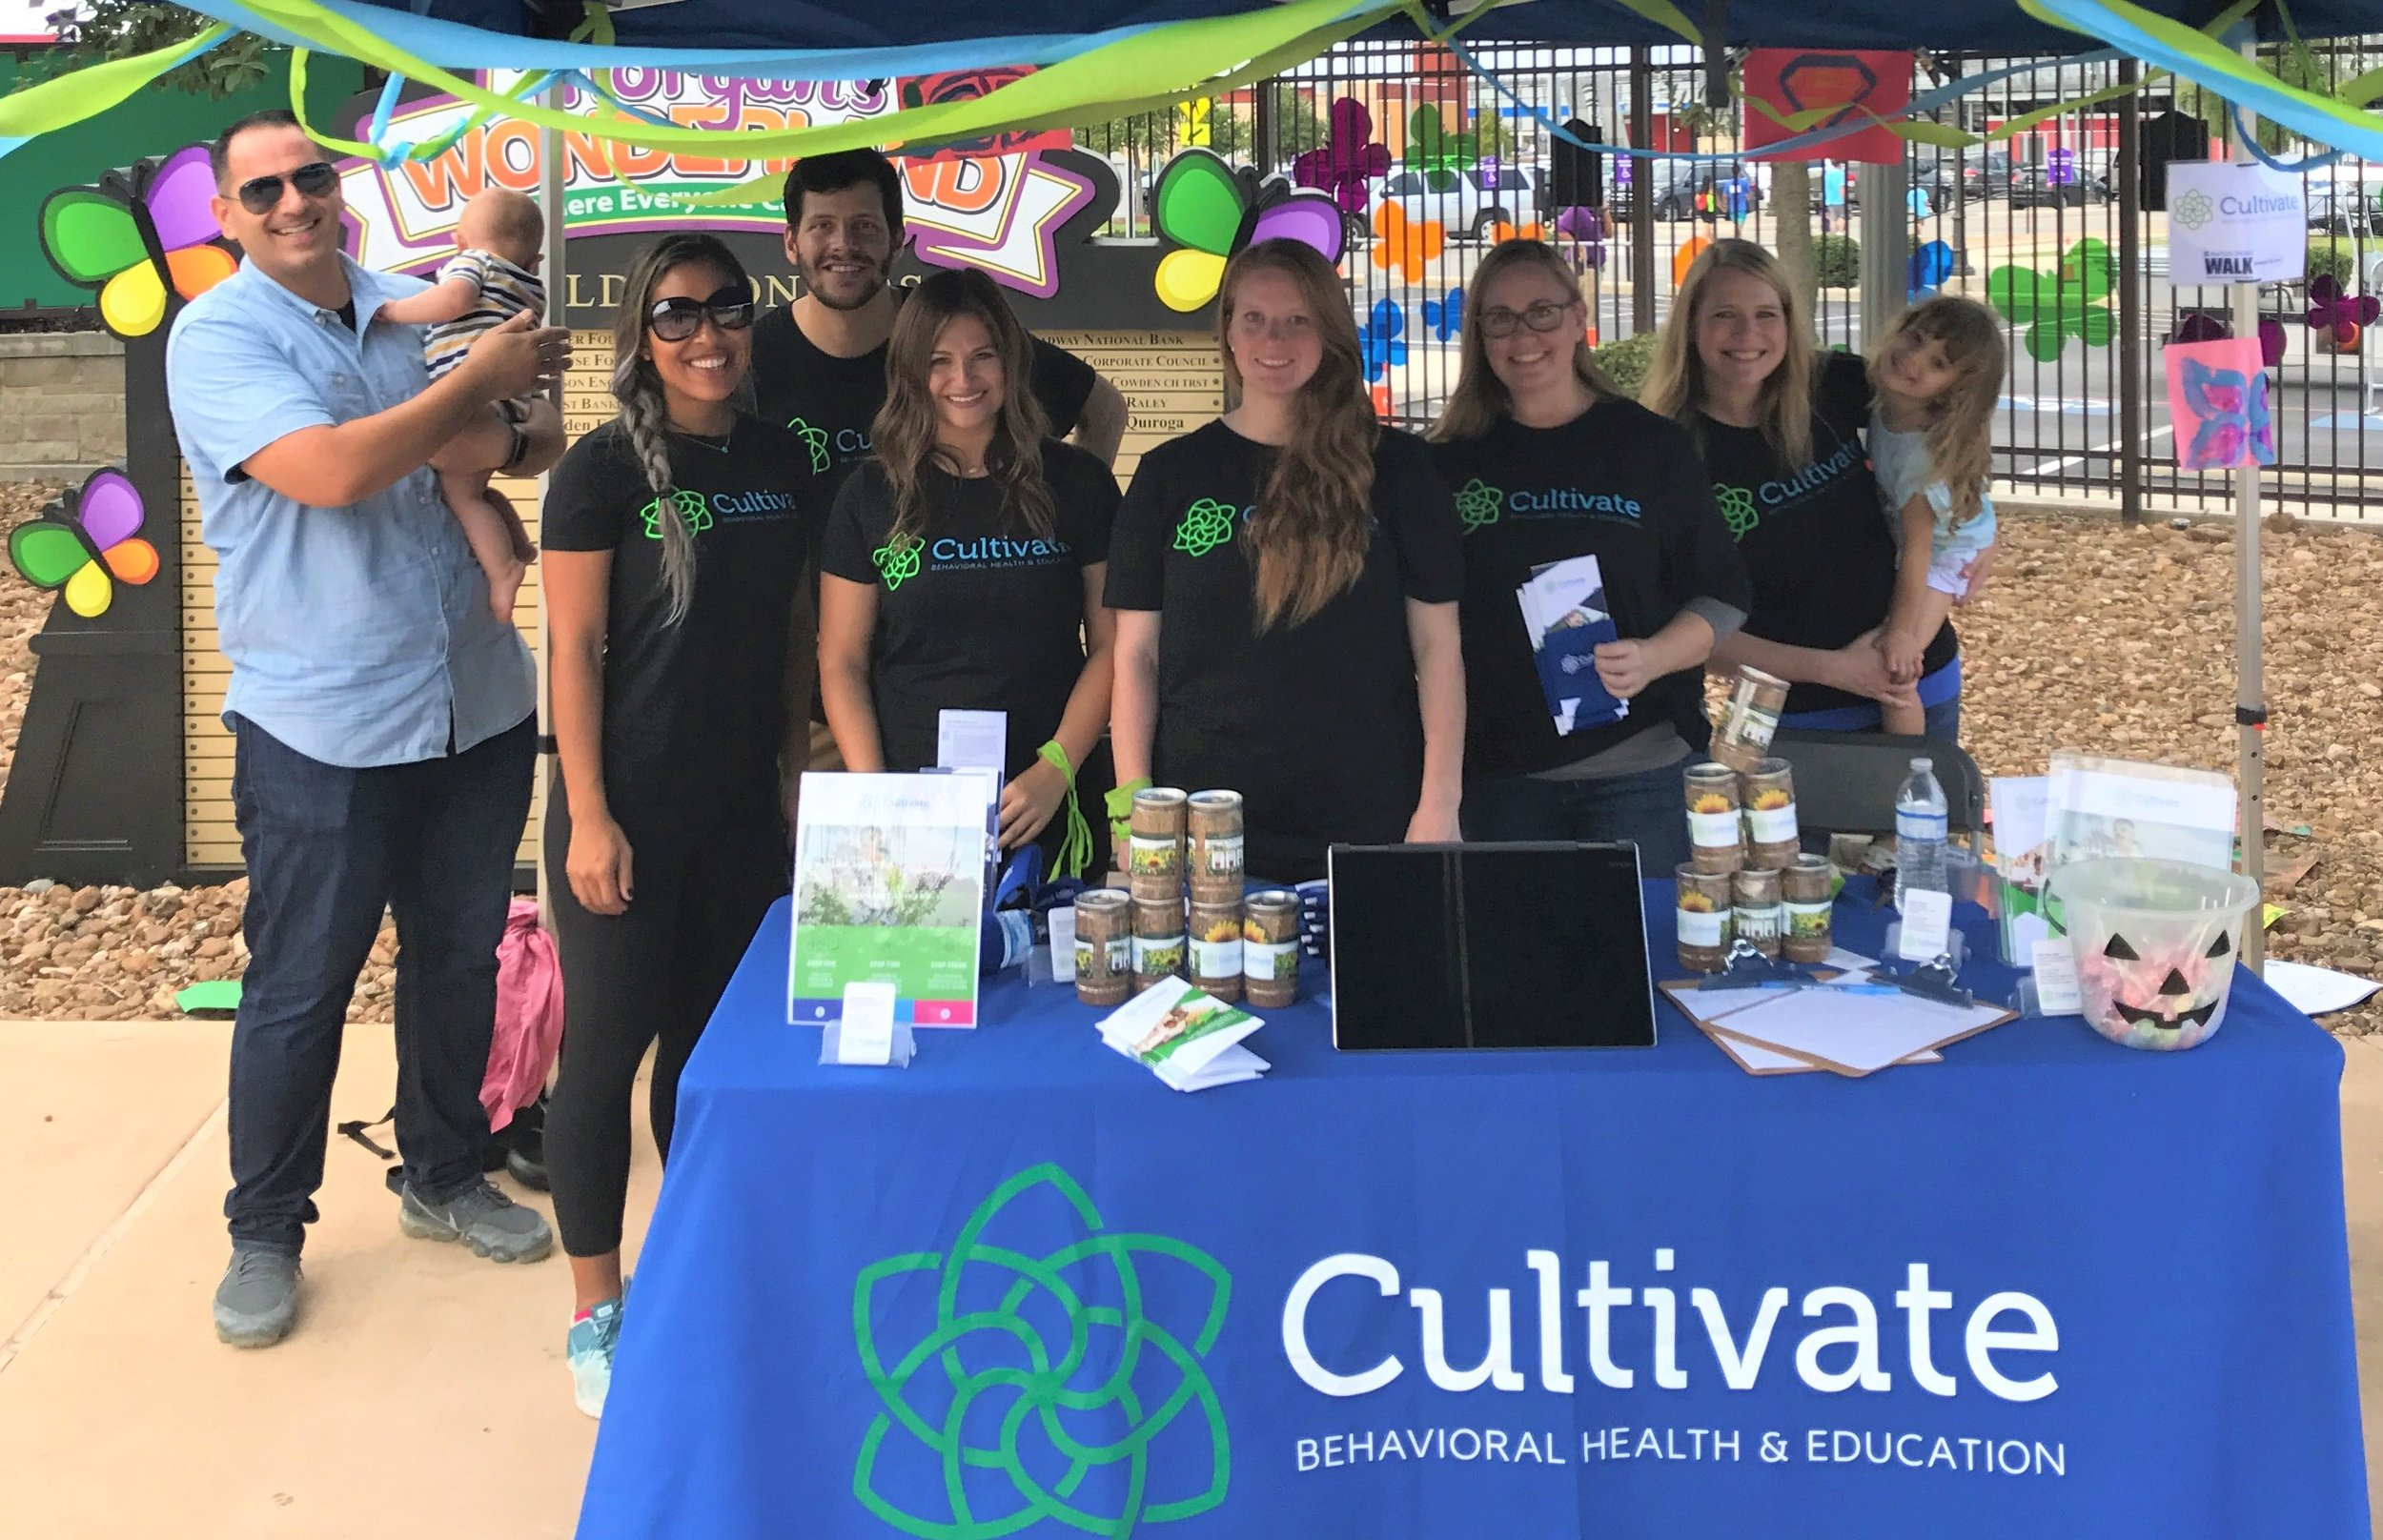 aba-therapy-provider-san-antonio-autism-speaks-walk-2017-staff-cultivate.JPG